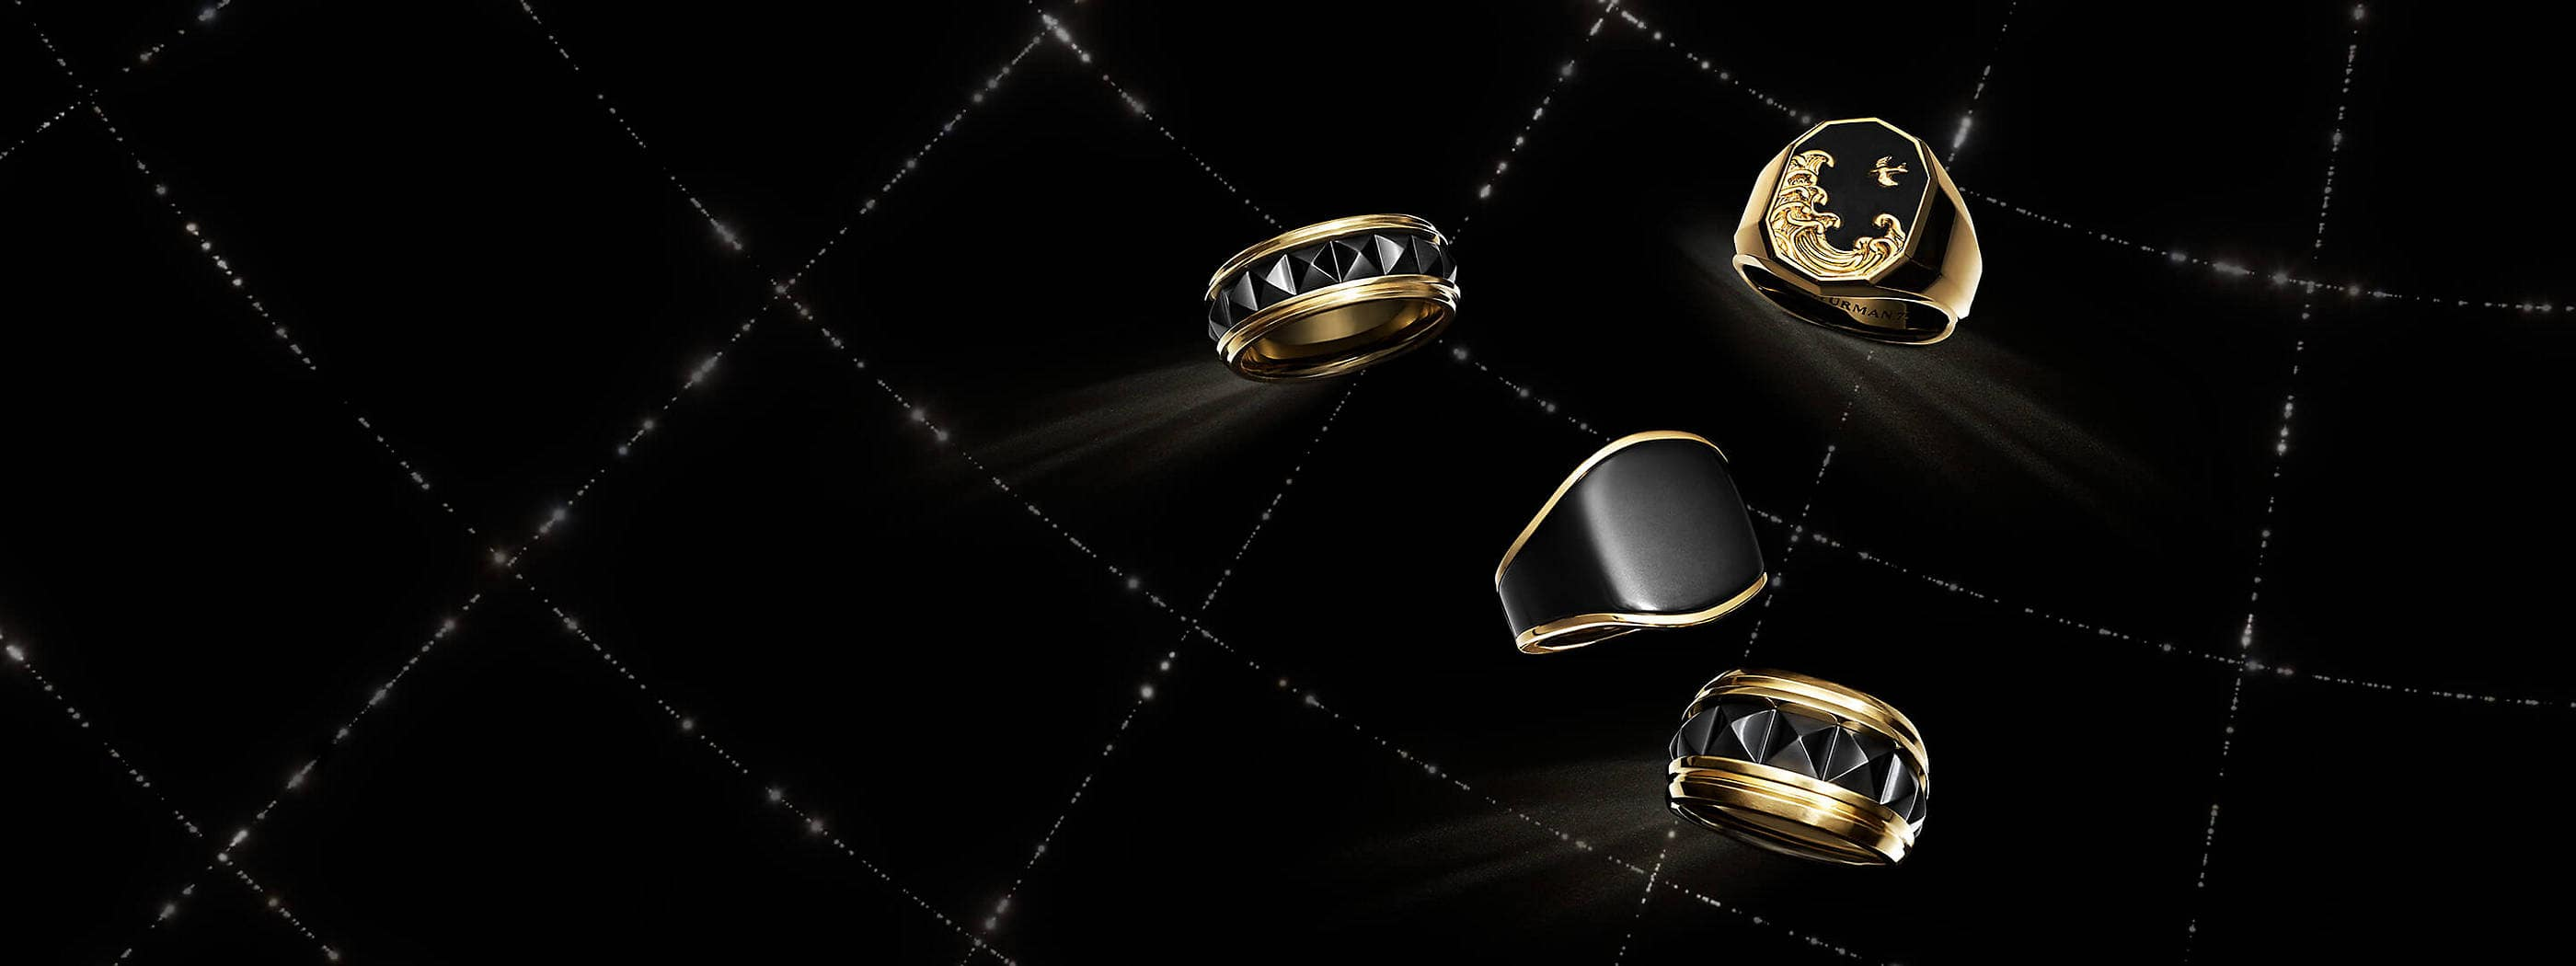 A color photo shows four David Yurman men's rings floating in a black background with white latitude and longitude lines. The jewelry is crafted from 18K yellow gold with or without forged carbon or black titanium.